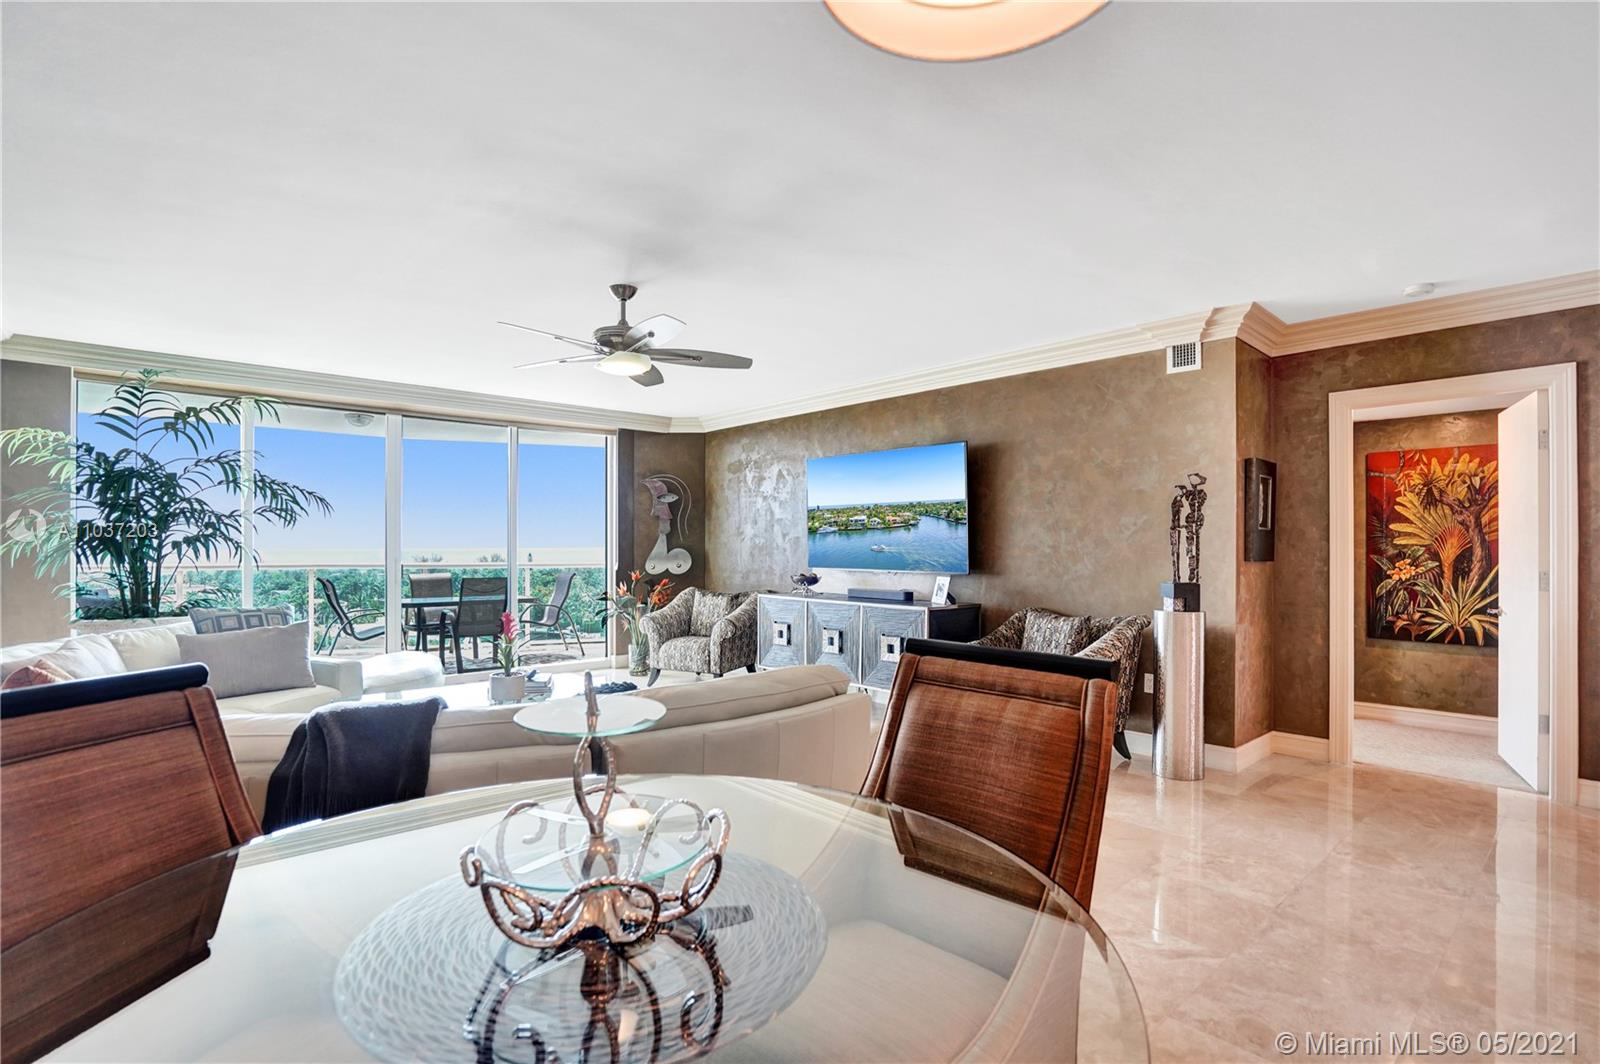 Photo of 20201 Country Club Dr #1006, Aventura, Florida, 33180 - Master bedroom facing the water.